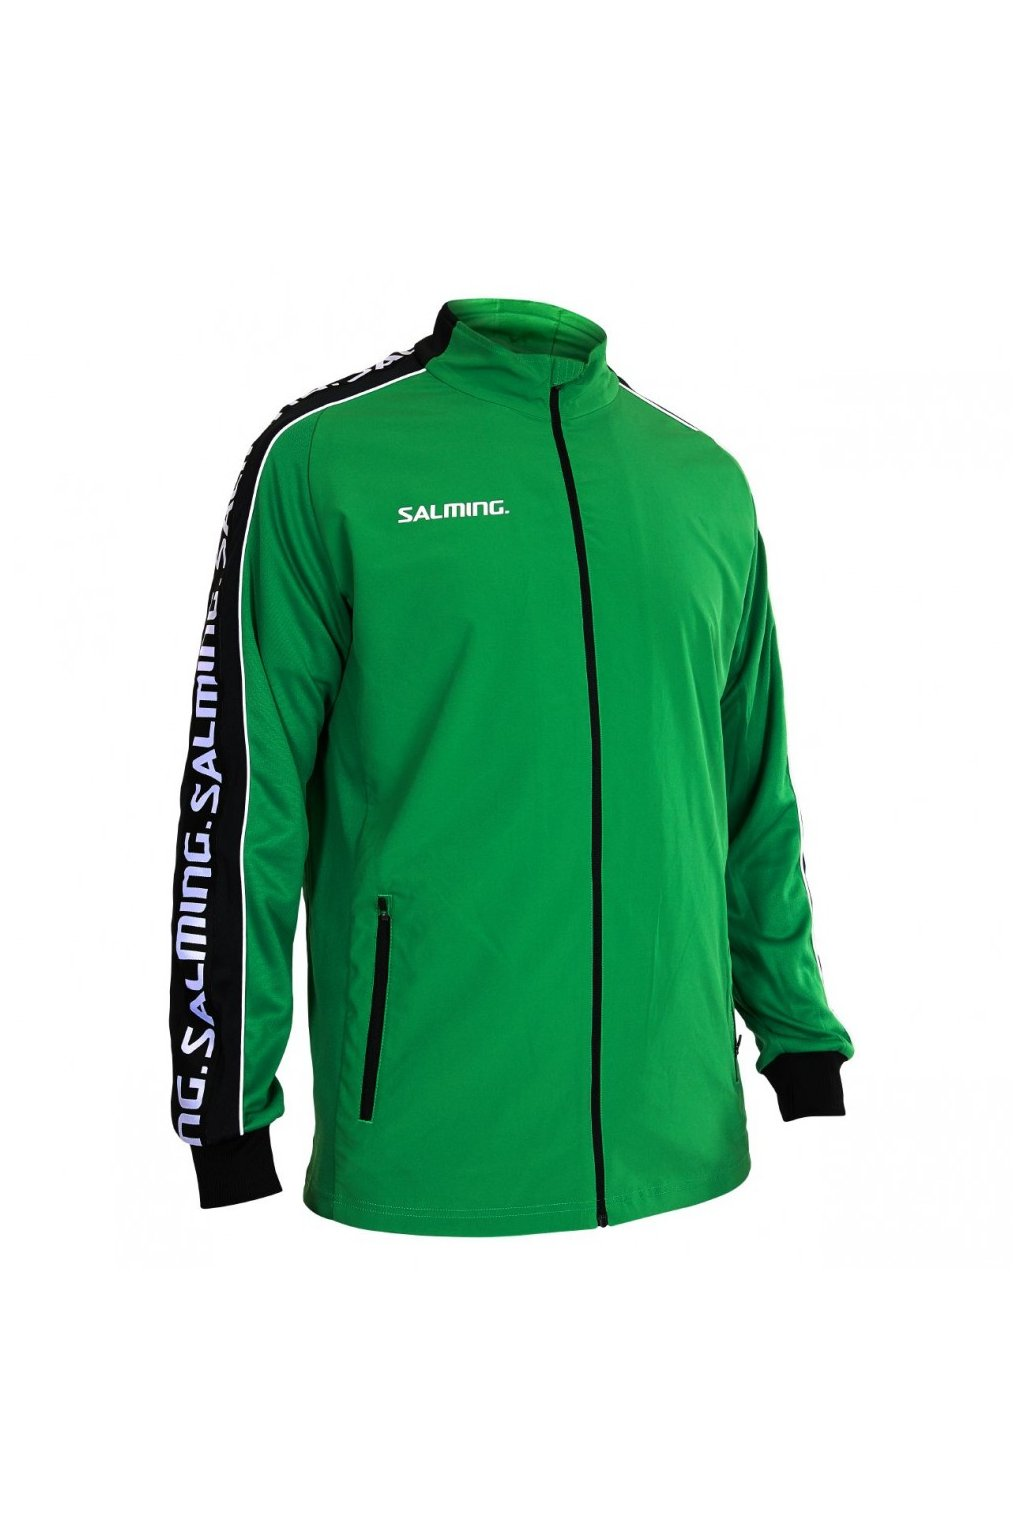 salming delta jacket men (1)